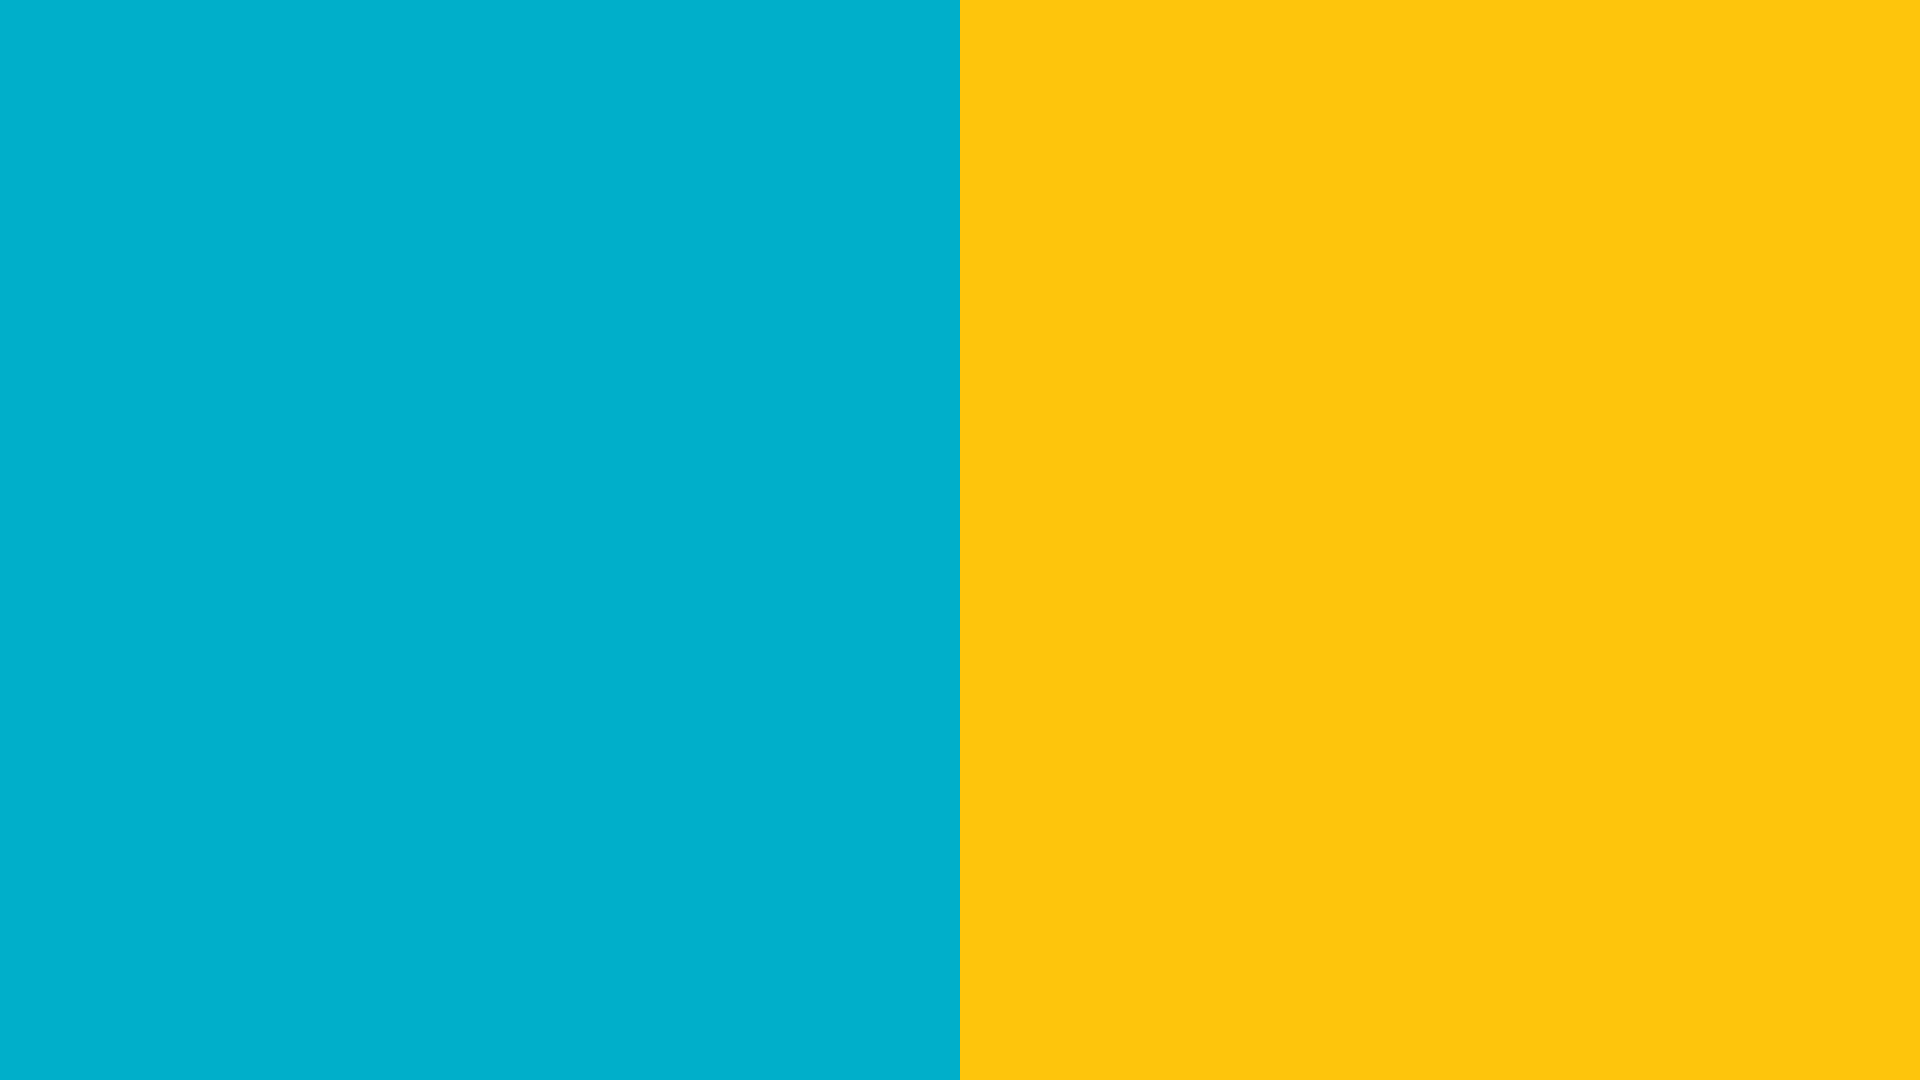 Kazakhstan Flag Color Palette